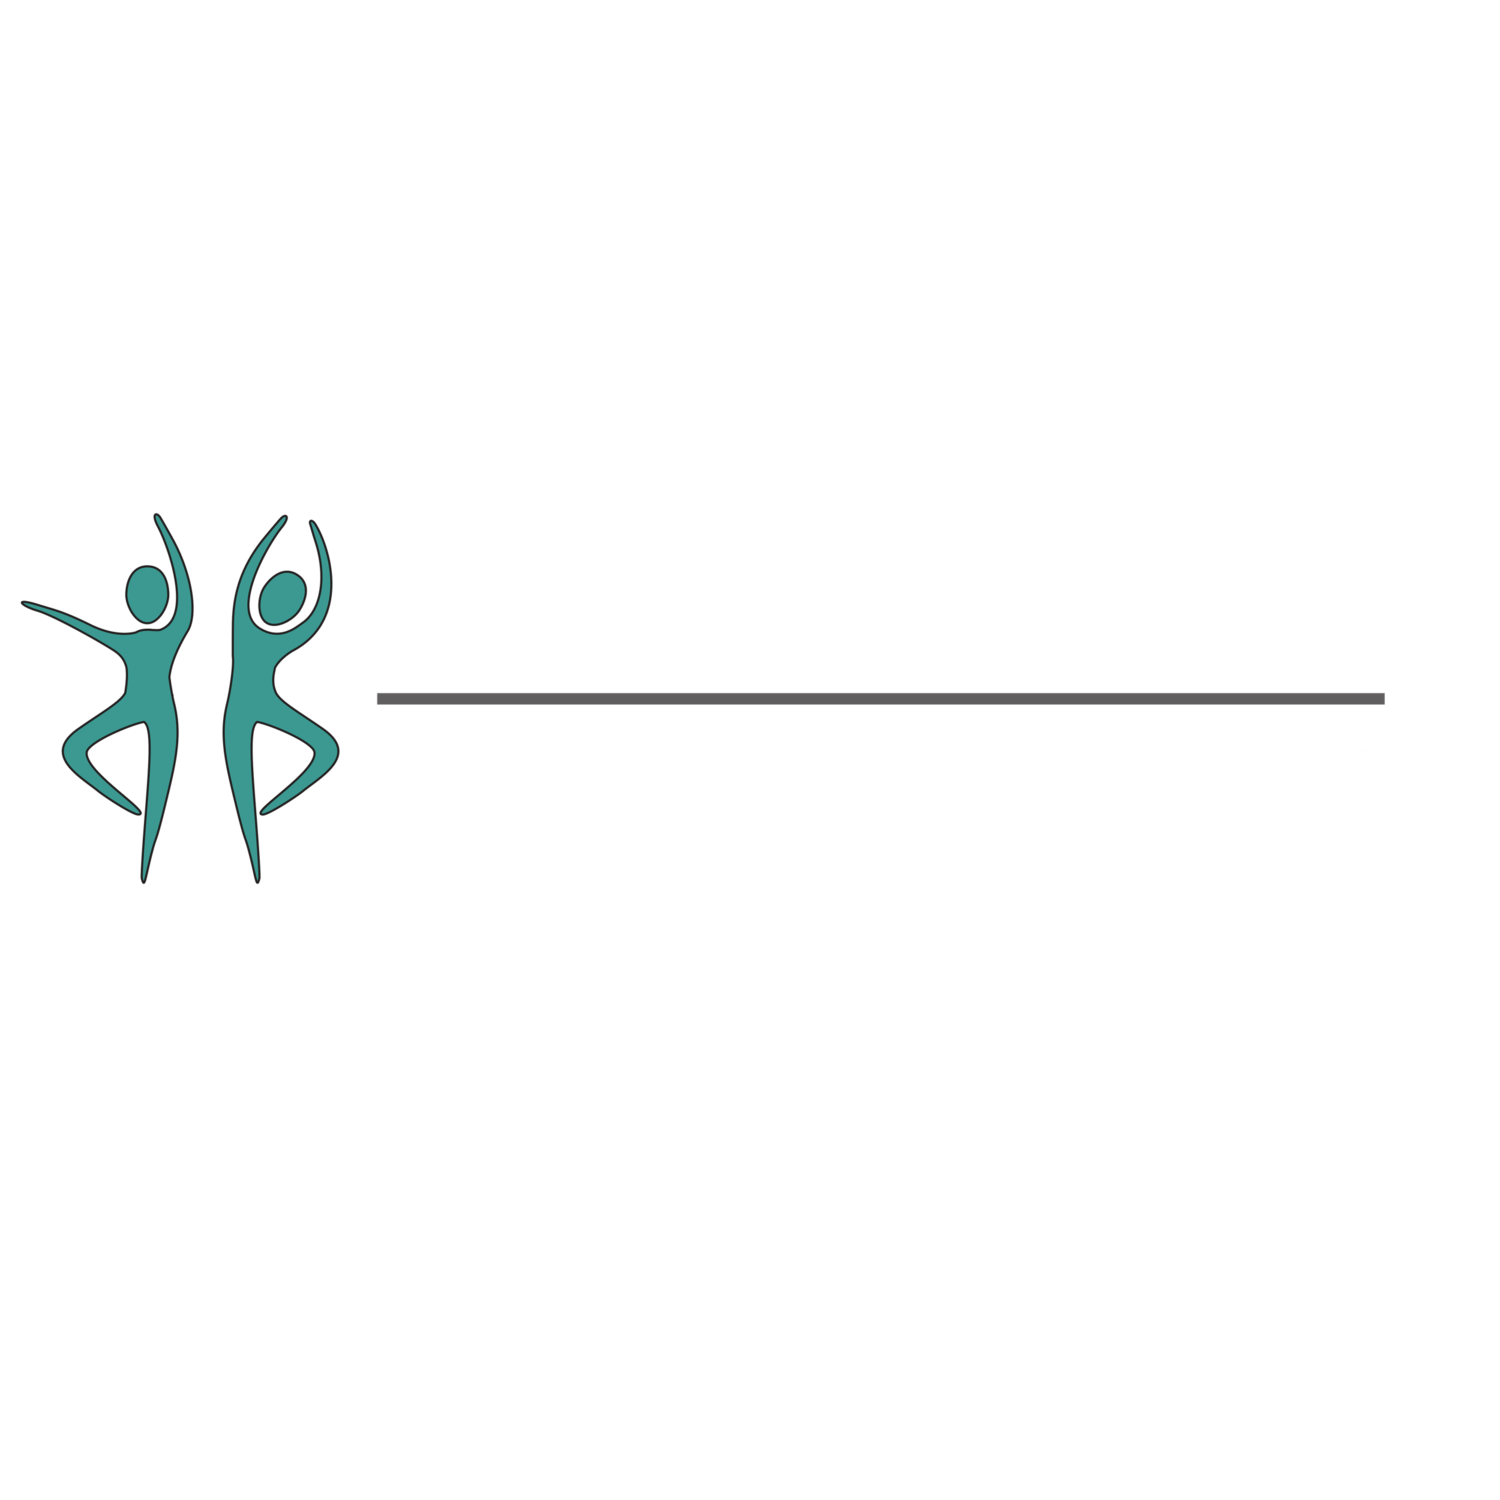 San Francisco Playback Theater